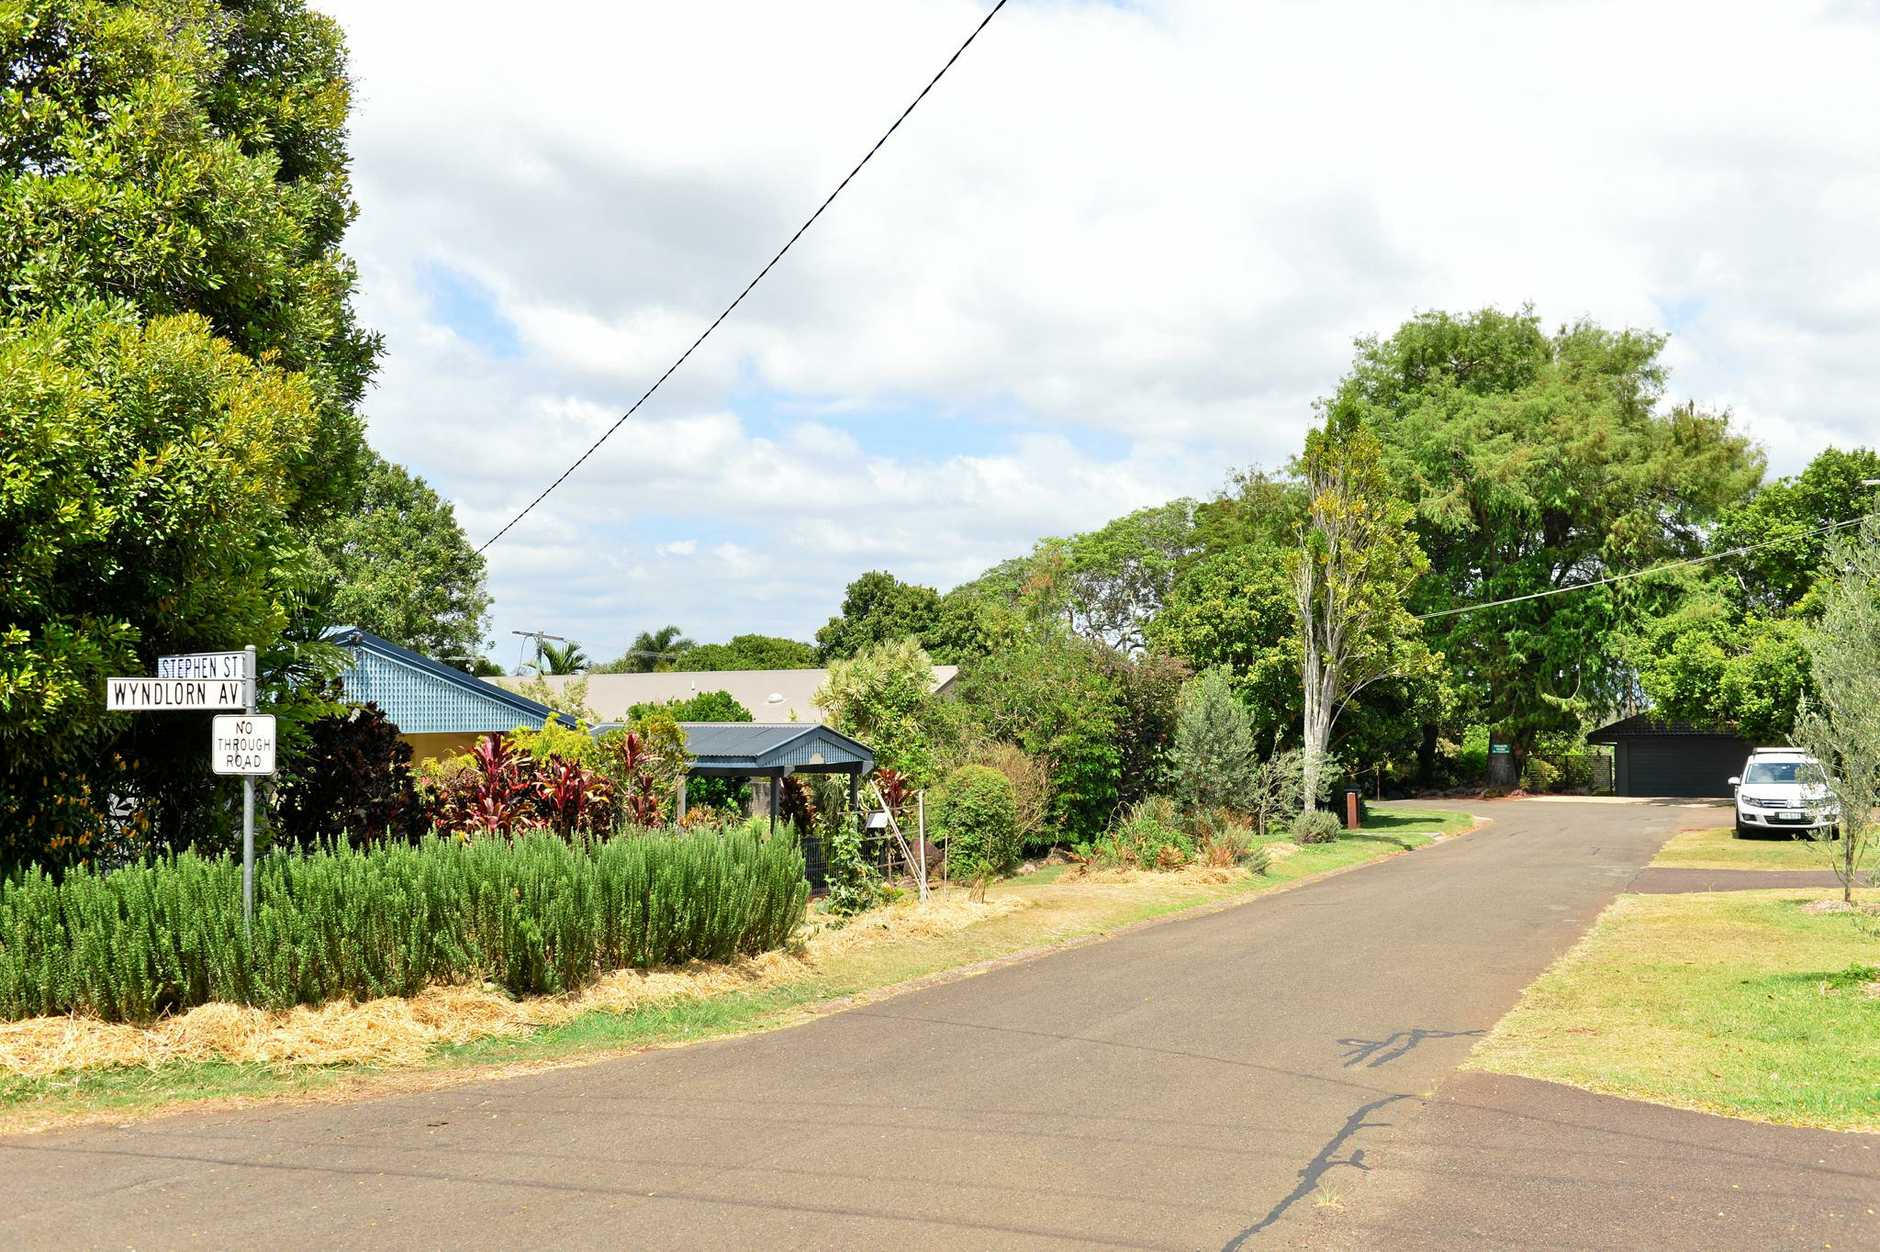 DEAL OR NO DEAL: An Urban Food Street Facebook post claims the mayor has reneged on an agreement for a second meeting to discuss permits, insurance and overall management of the verge gardens.